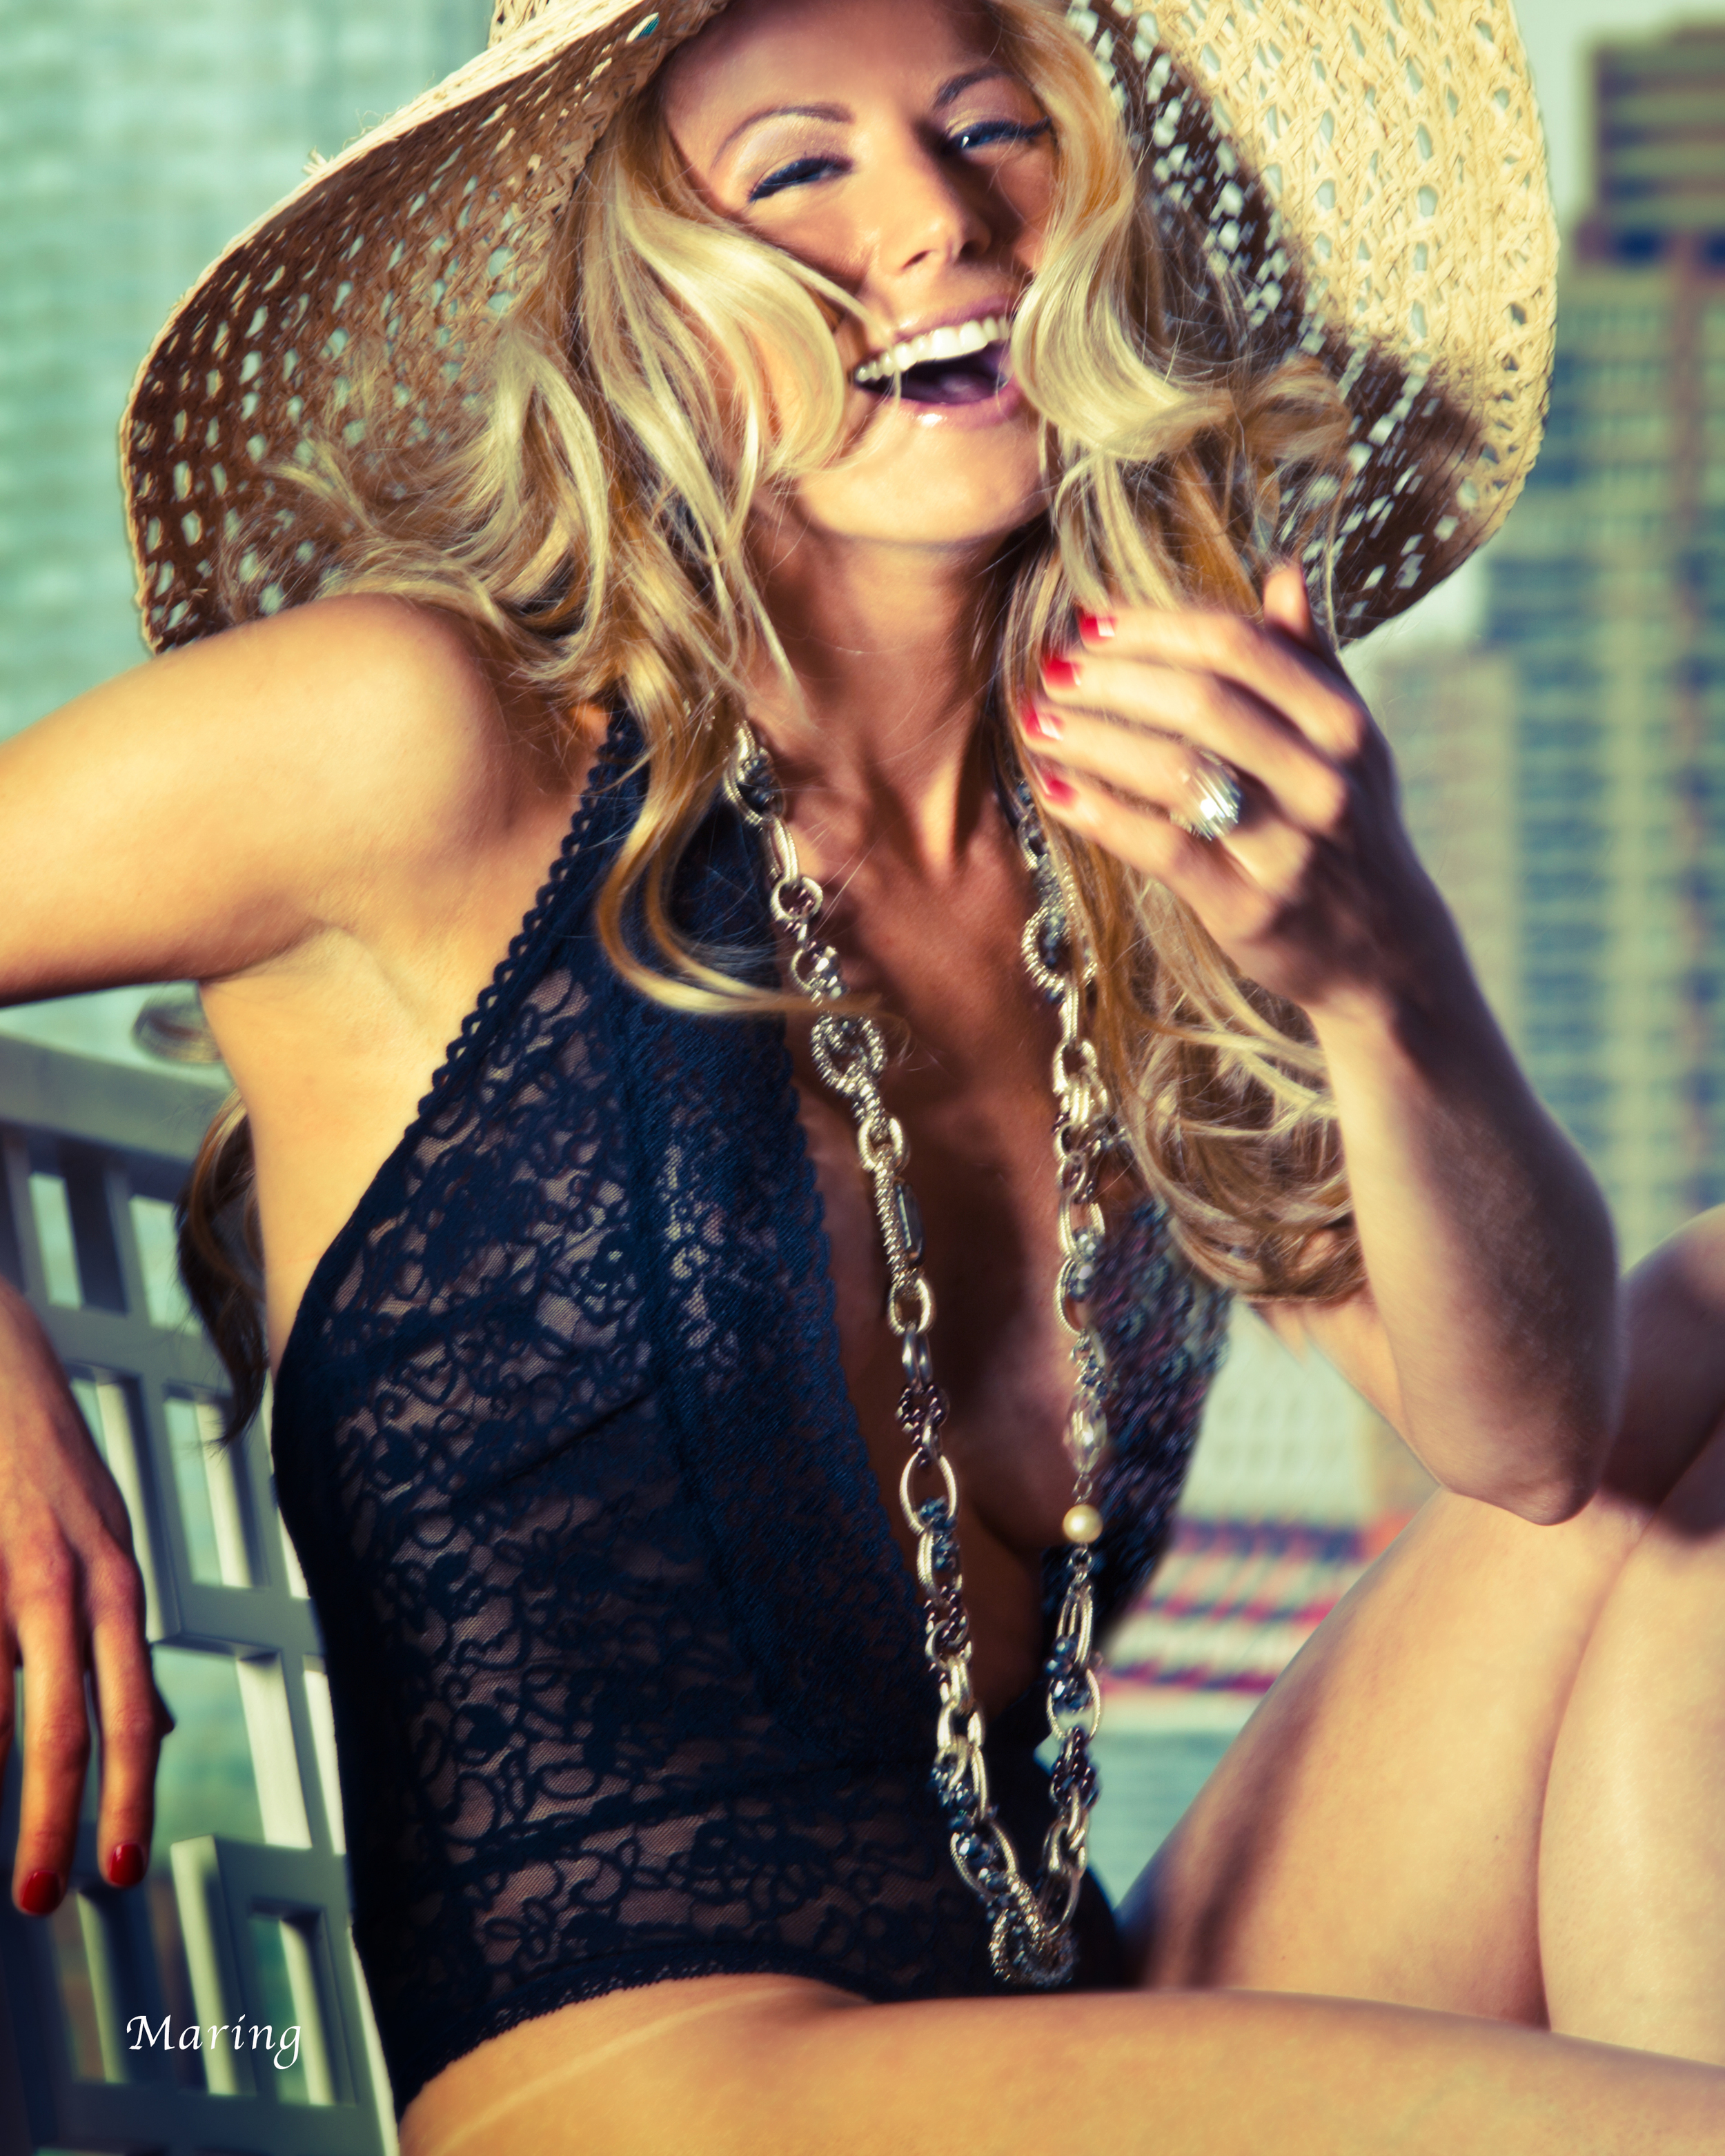 Boudoir photography can be sexy, but also fun, flirty, and fashionable with the right photographers